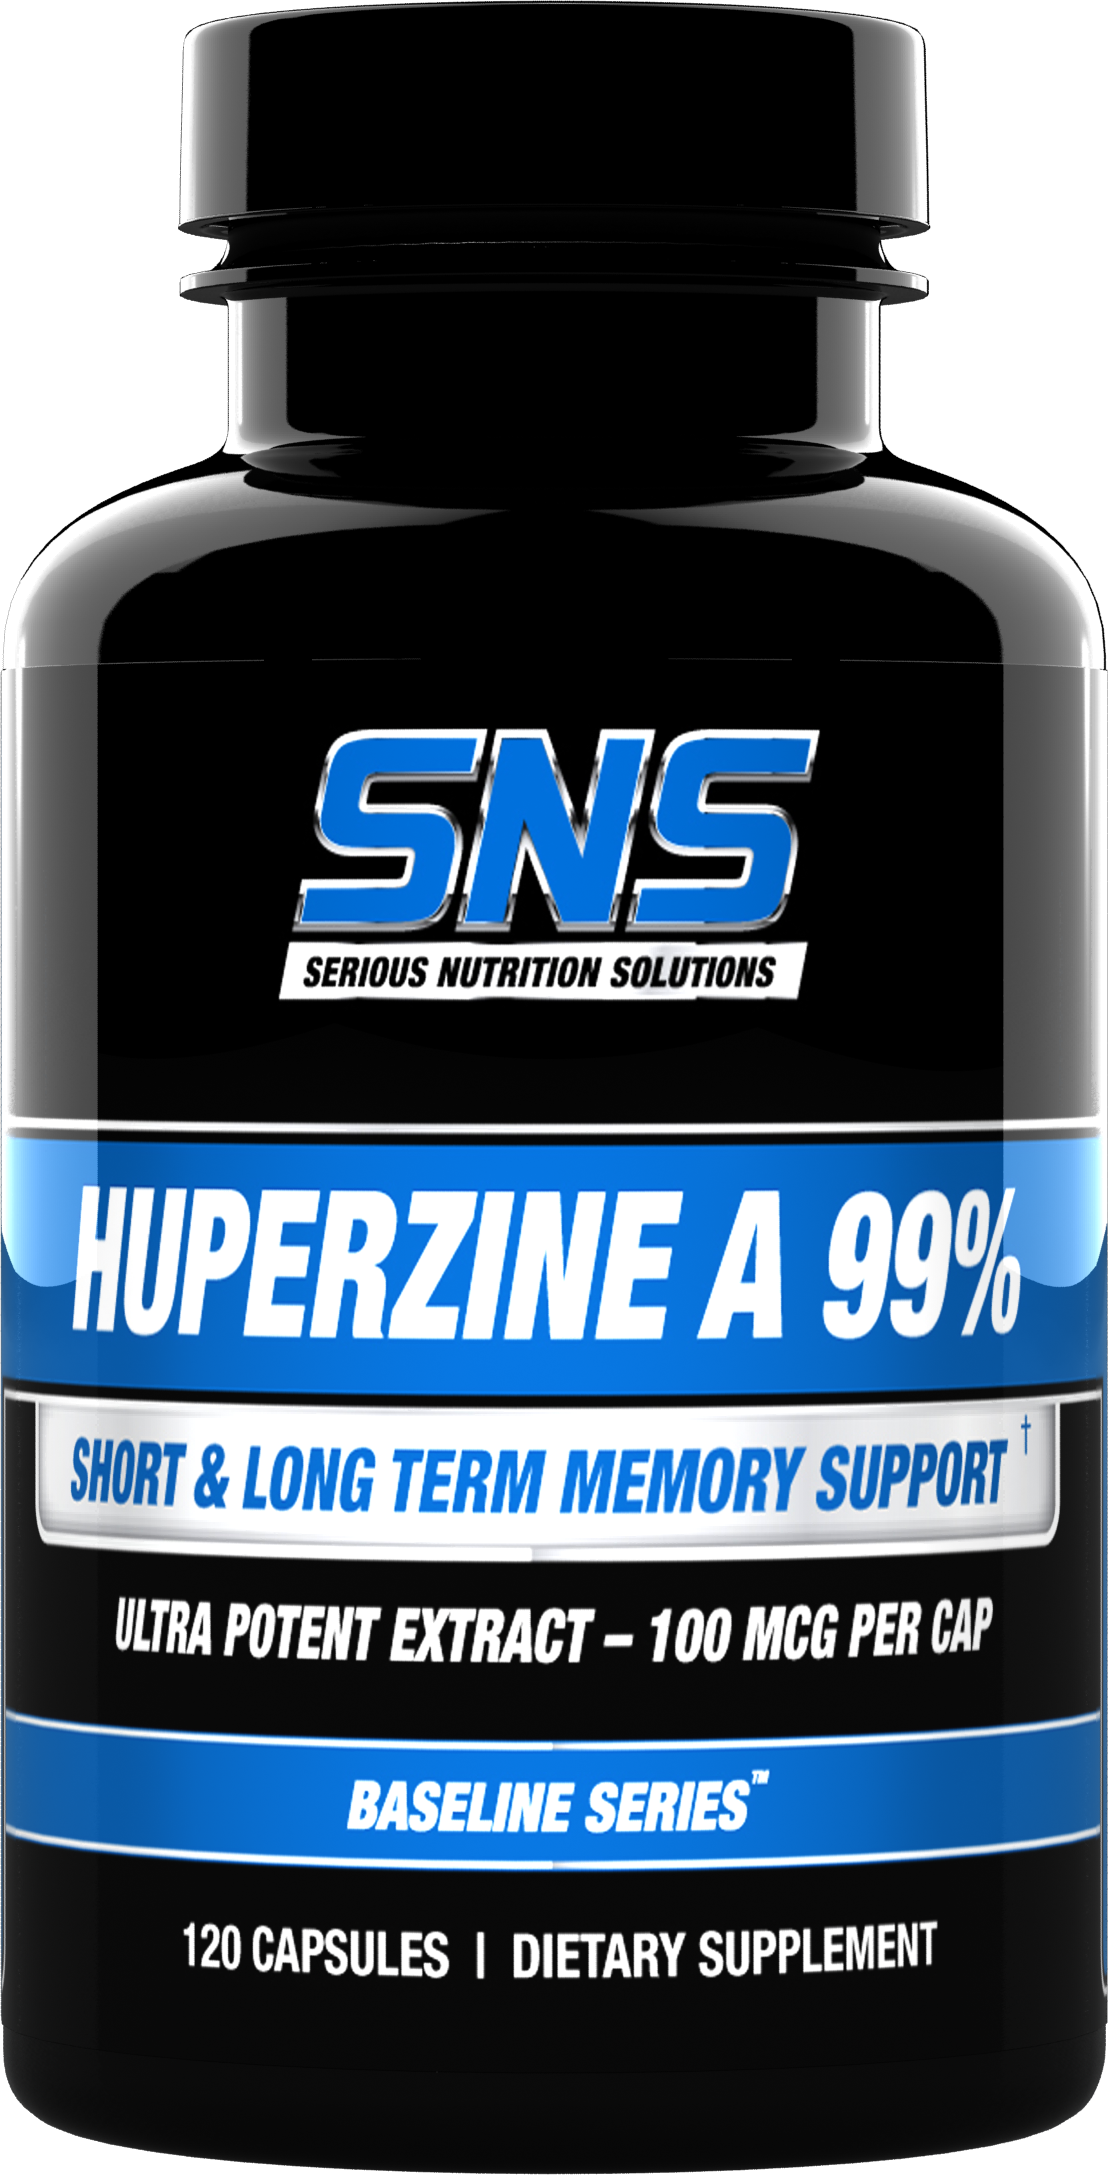 SNS Supplements - Serious Nutrition Solutions at PricePlow!